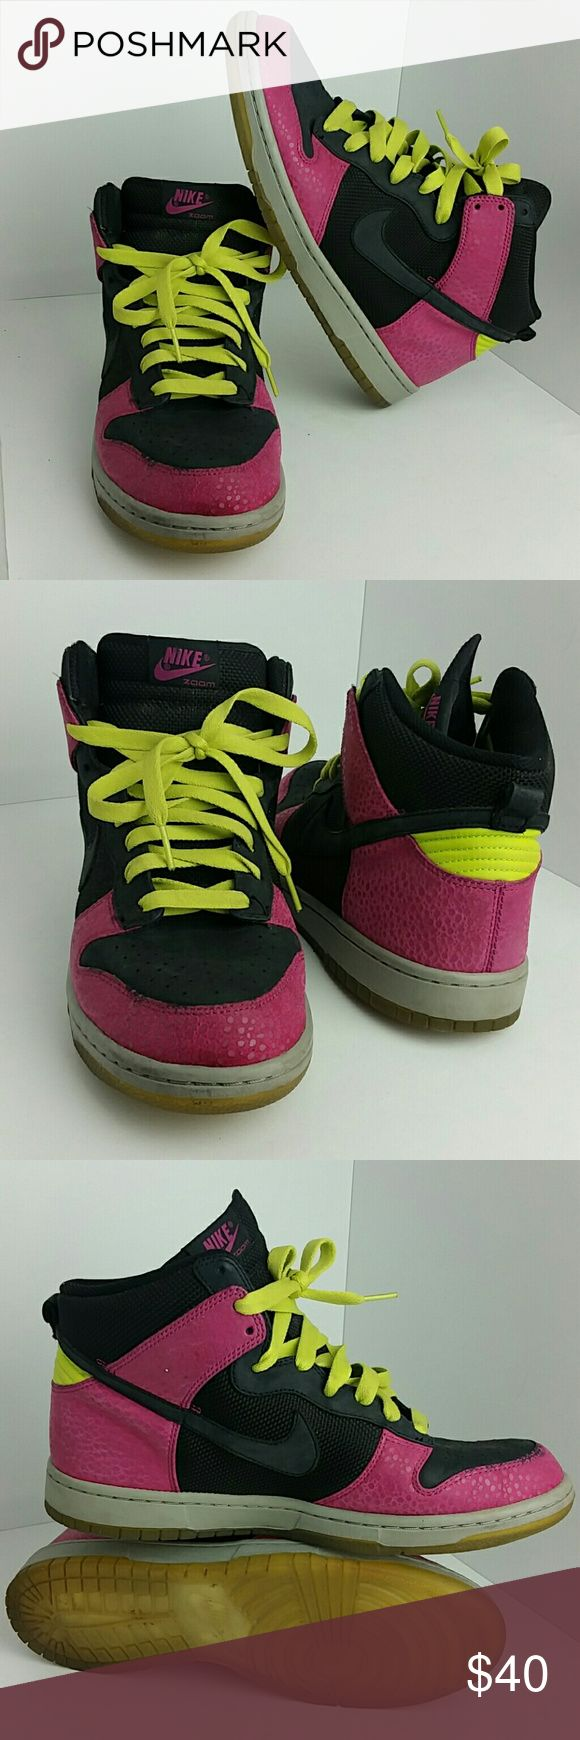 brand new e0ca4 c1424 ... low price nike dunk hi supreme spark mens shoes very clean inside out  ske sz .